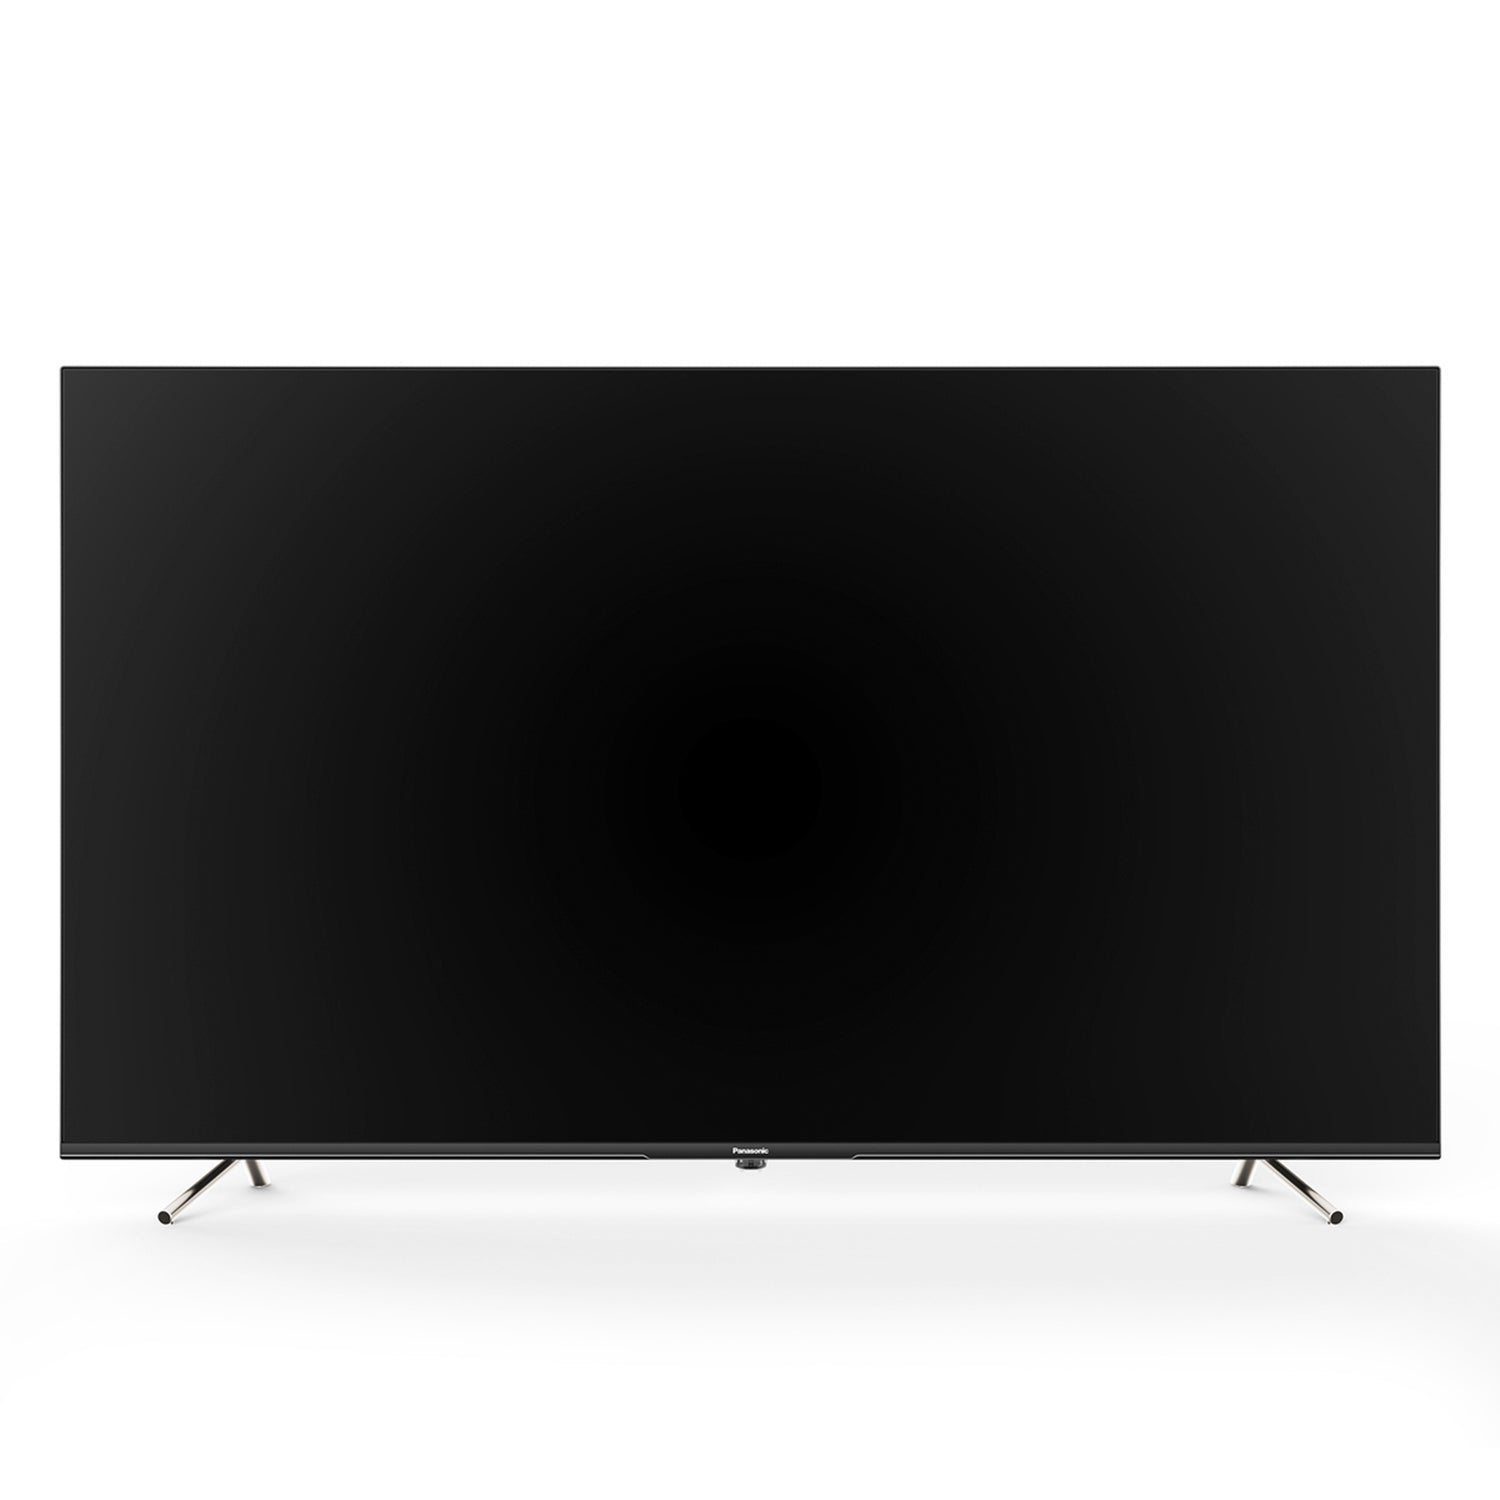 65-inch LED 4K UHD Smart Android TV